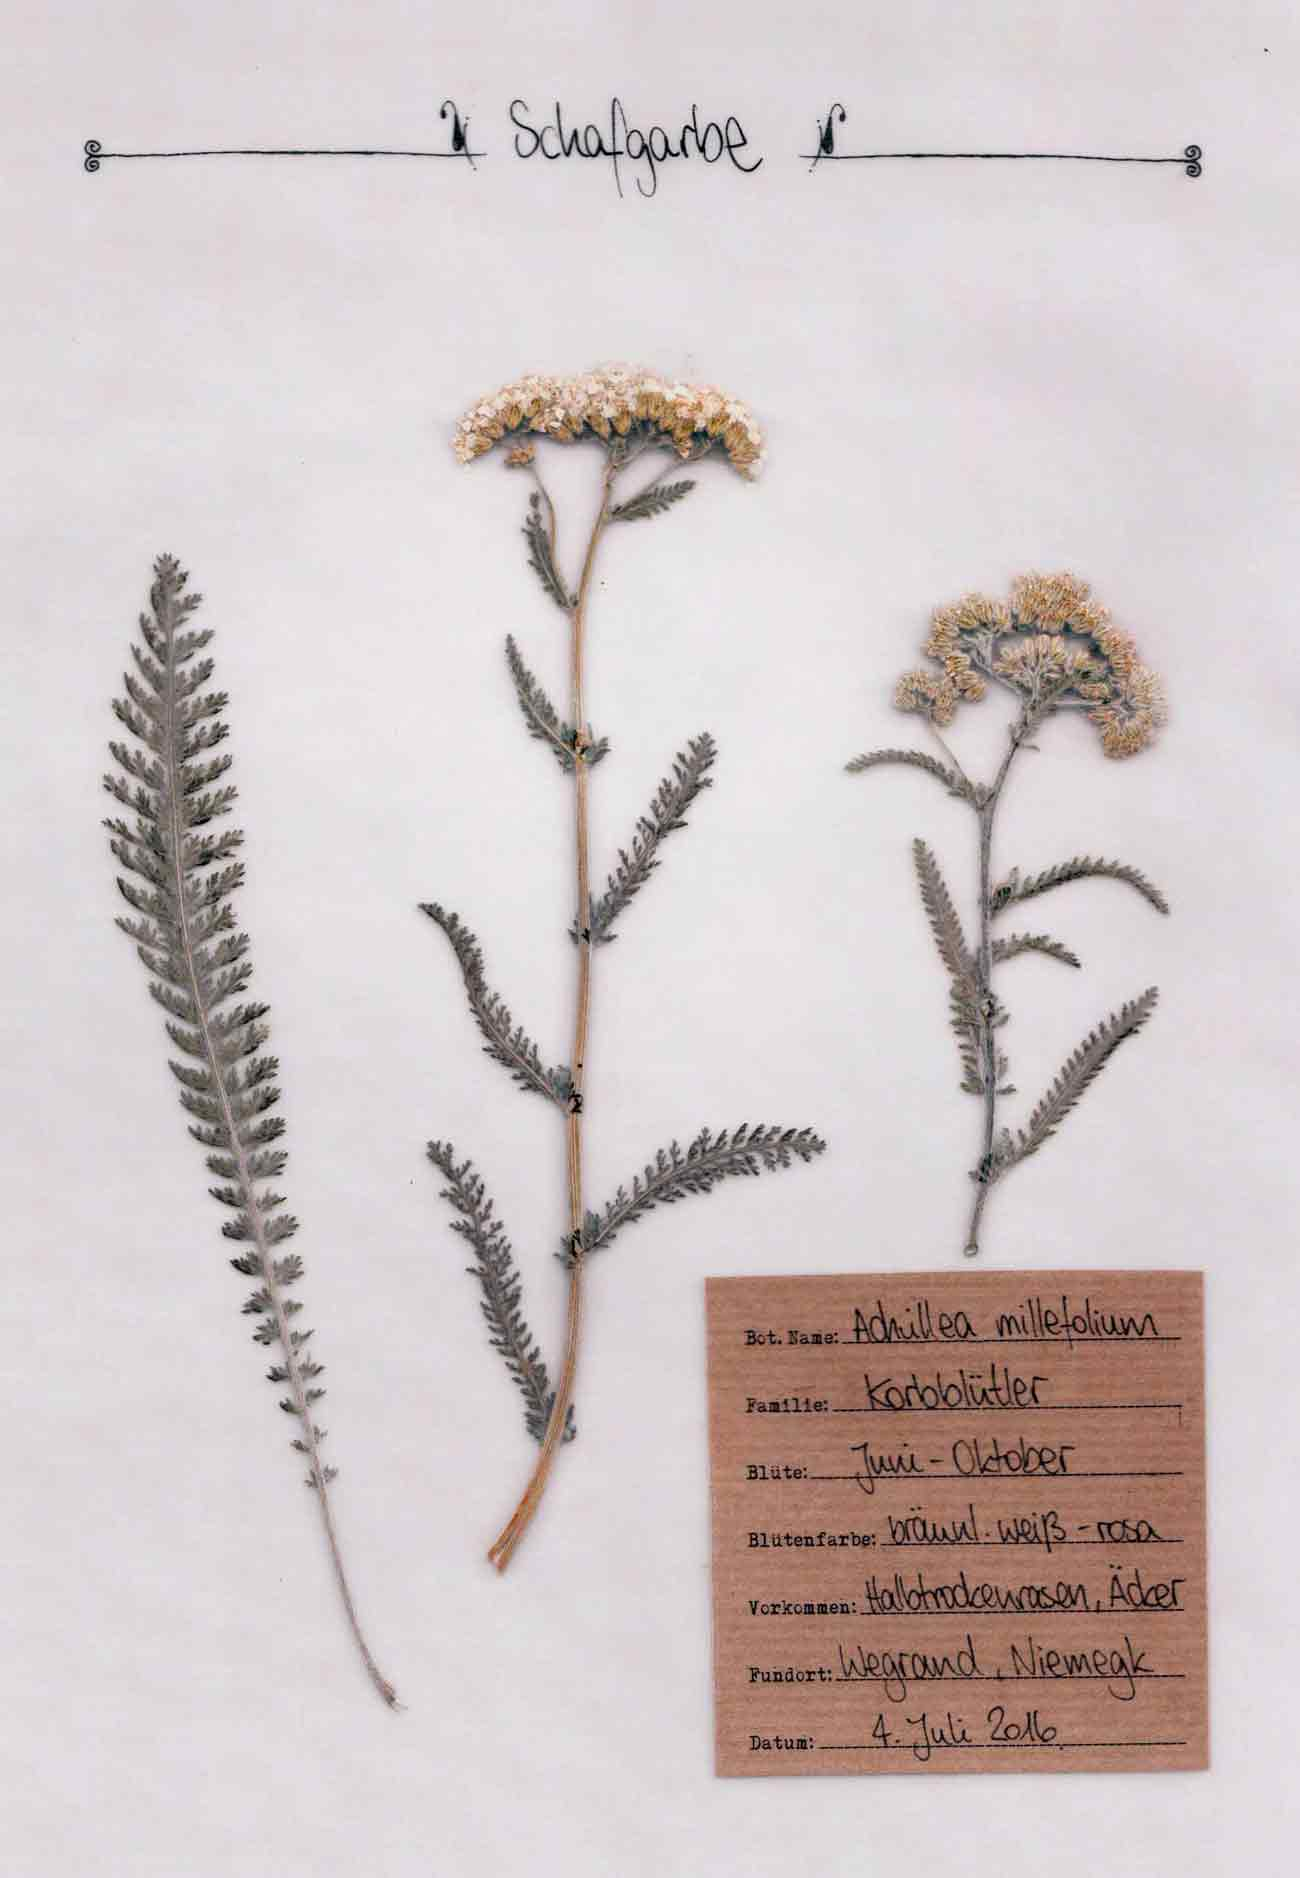 Schafgarbe Pflanzenportrait im digitalen Herbarium – Herbal Hunter